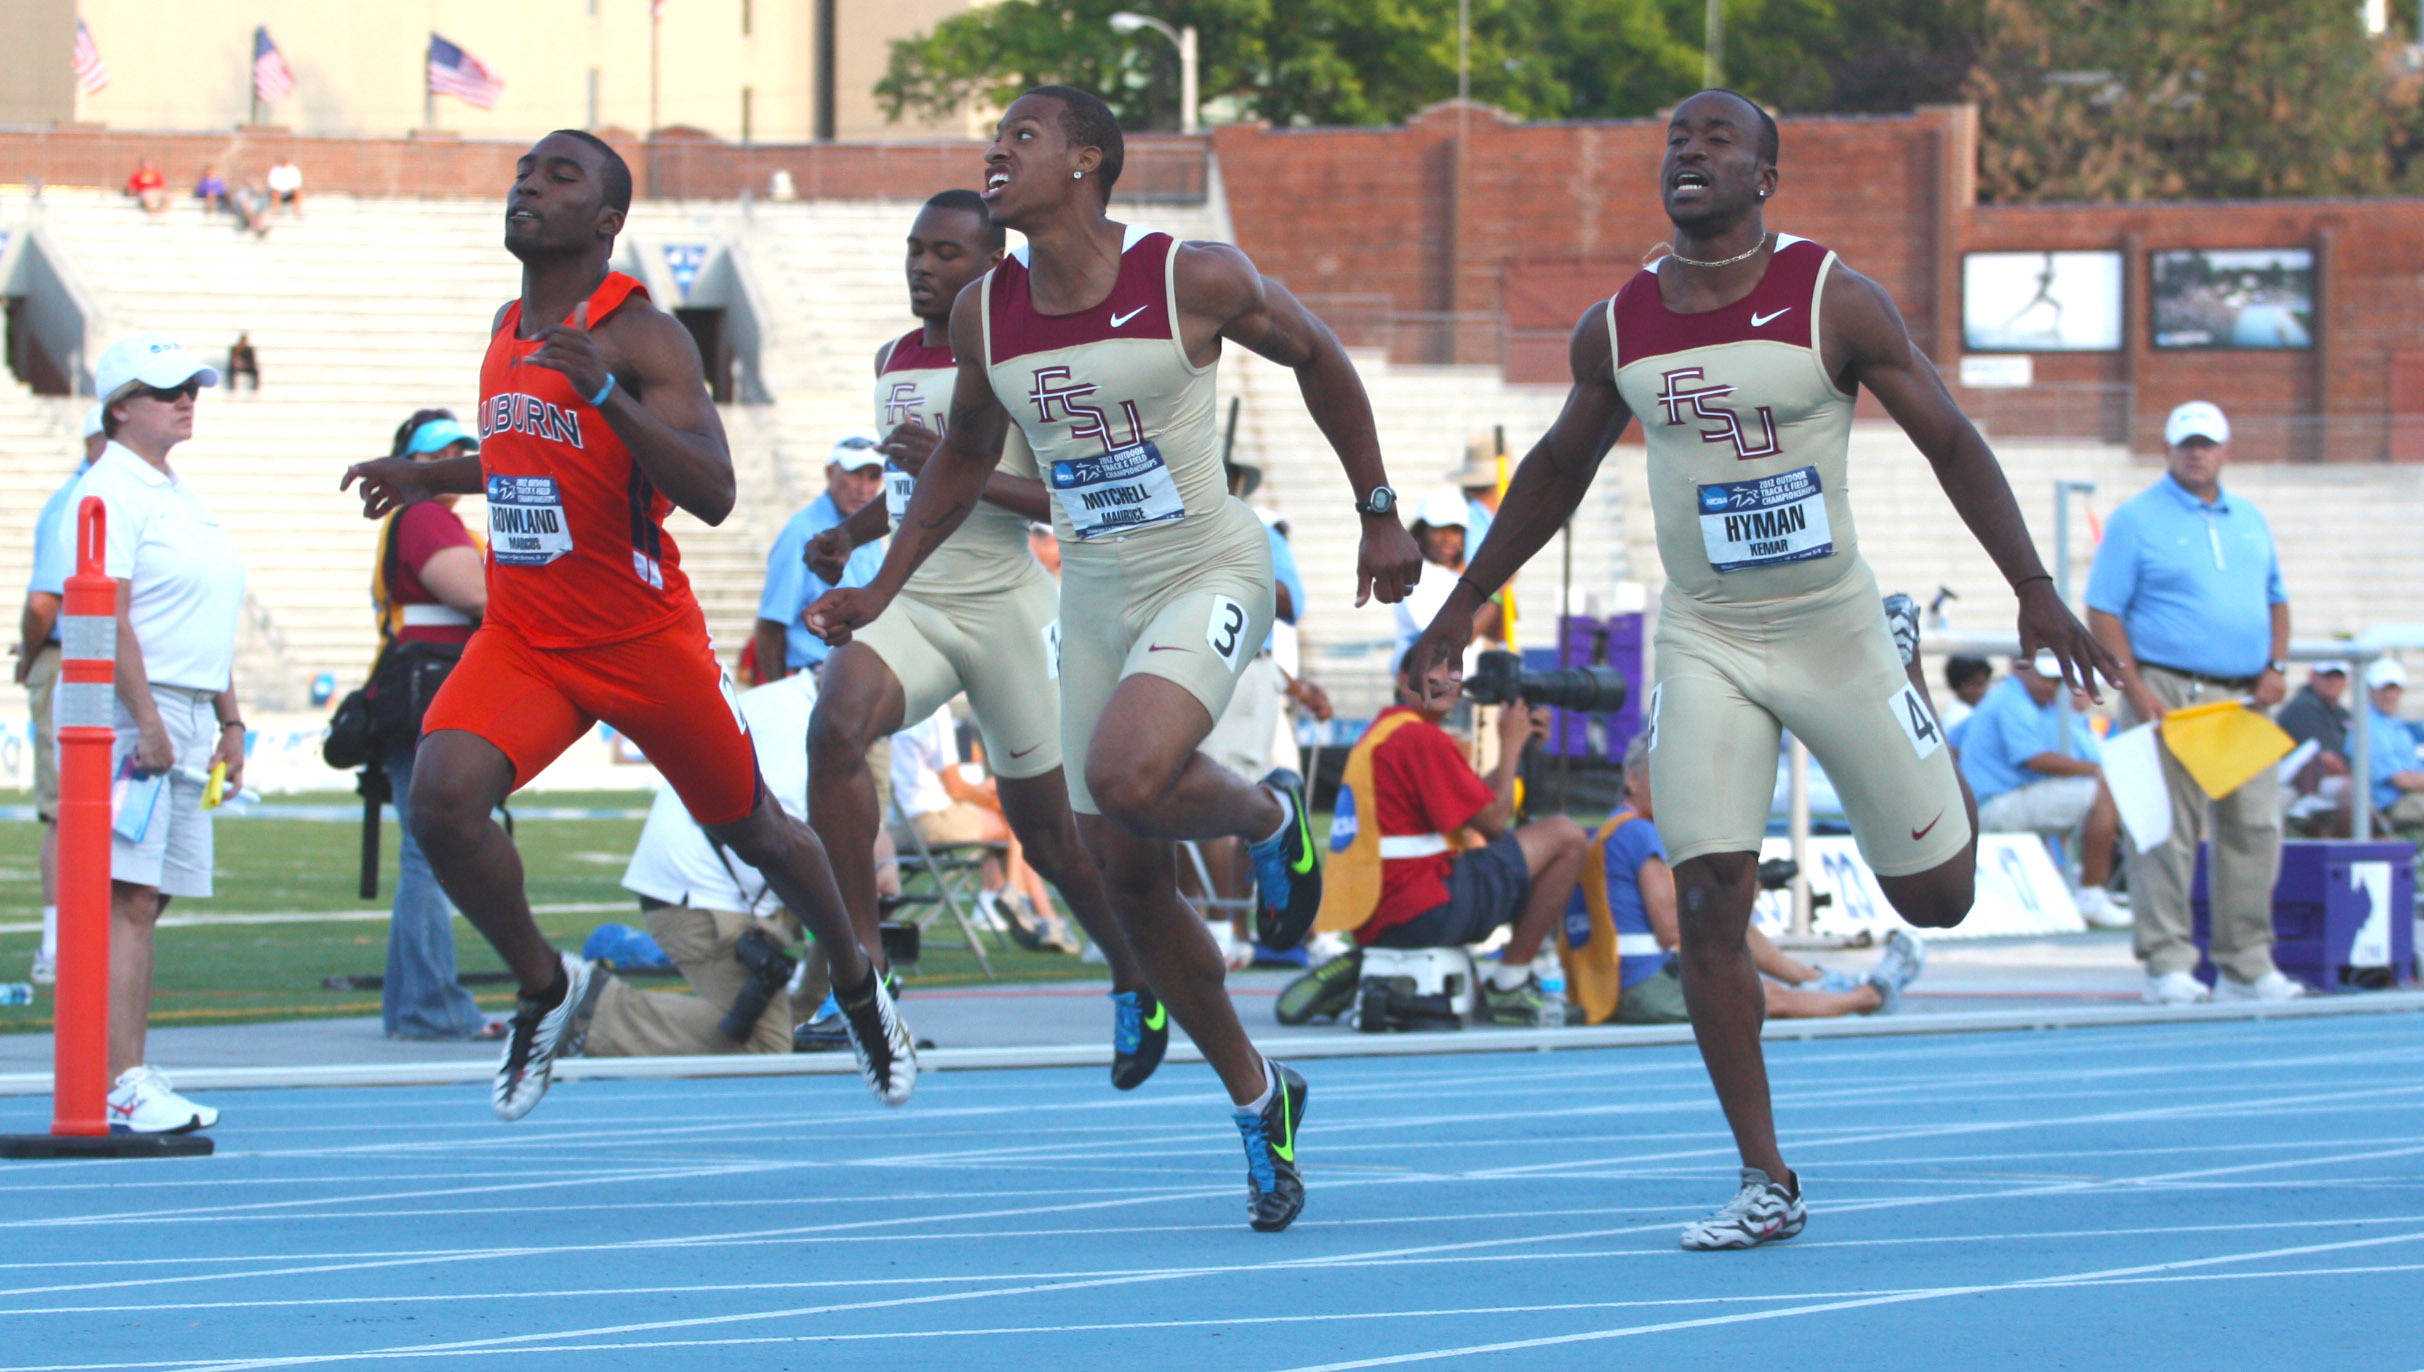 Maurice Mitchell and Kemar Hyman finish 1-2 in their 100-meter semifinal heat in 10.03 and 10.04, respectively.